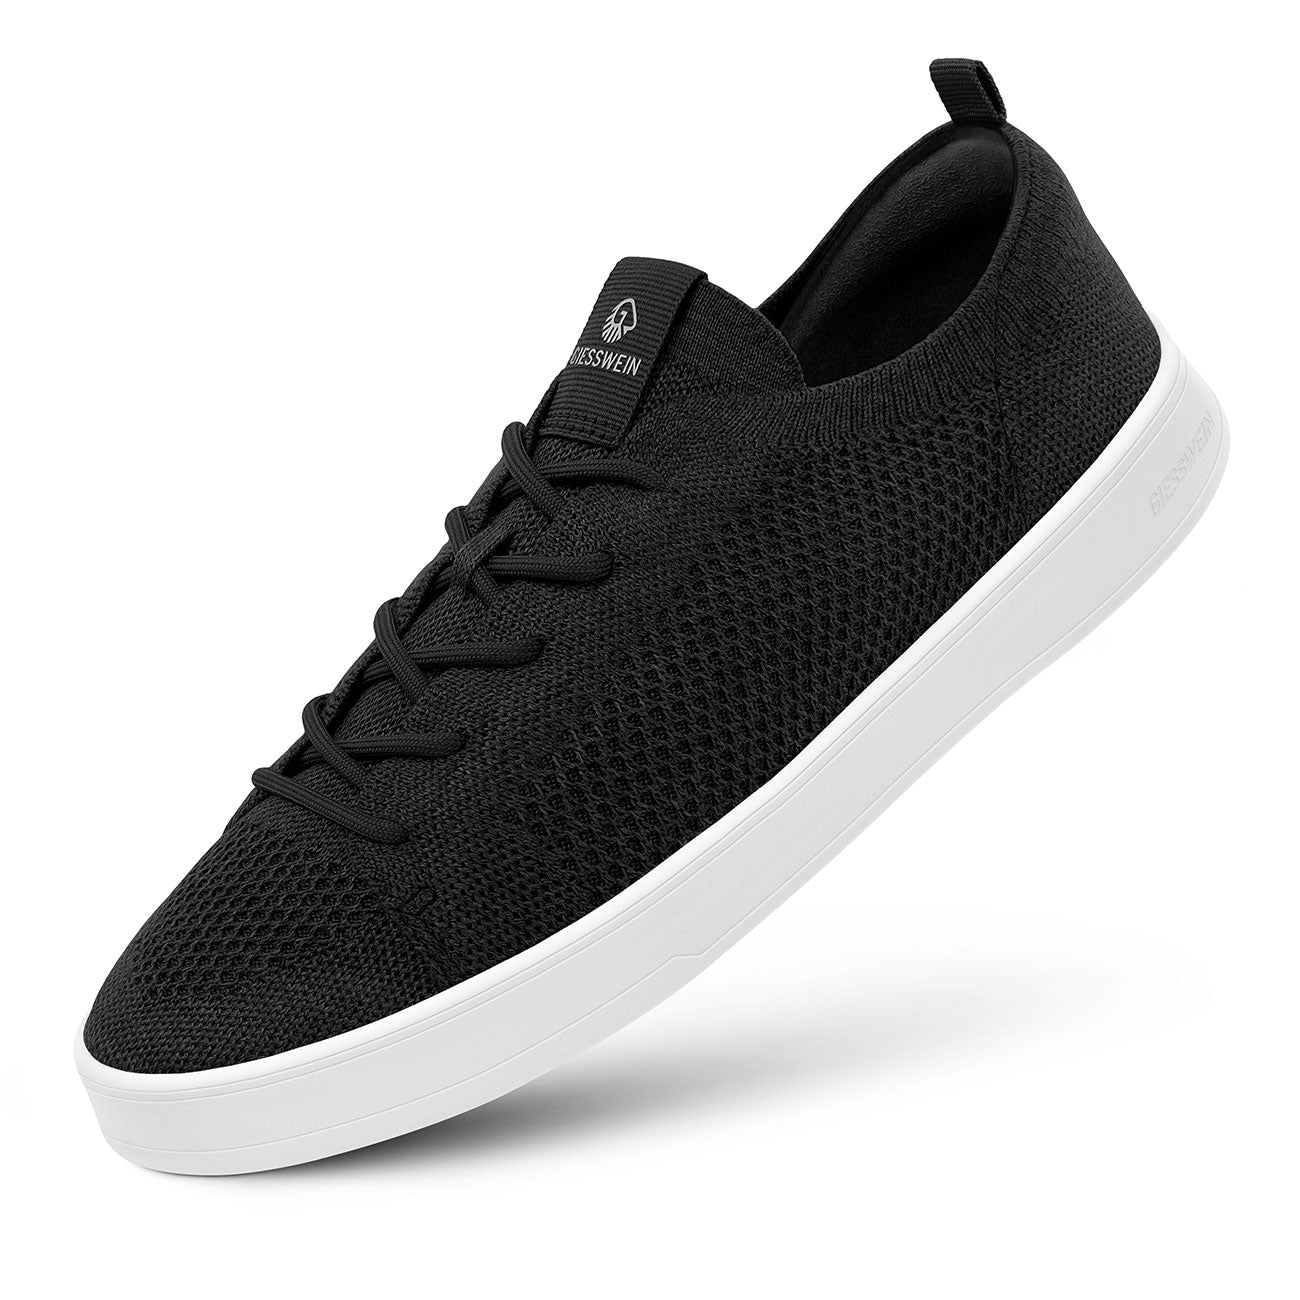 Wool Sneaker Women - Official Page from